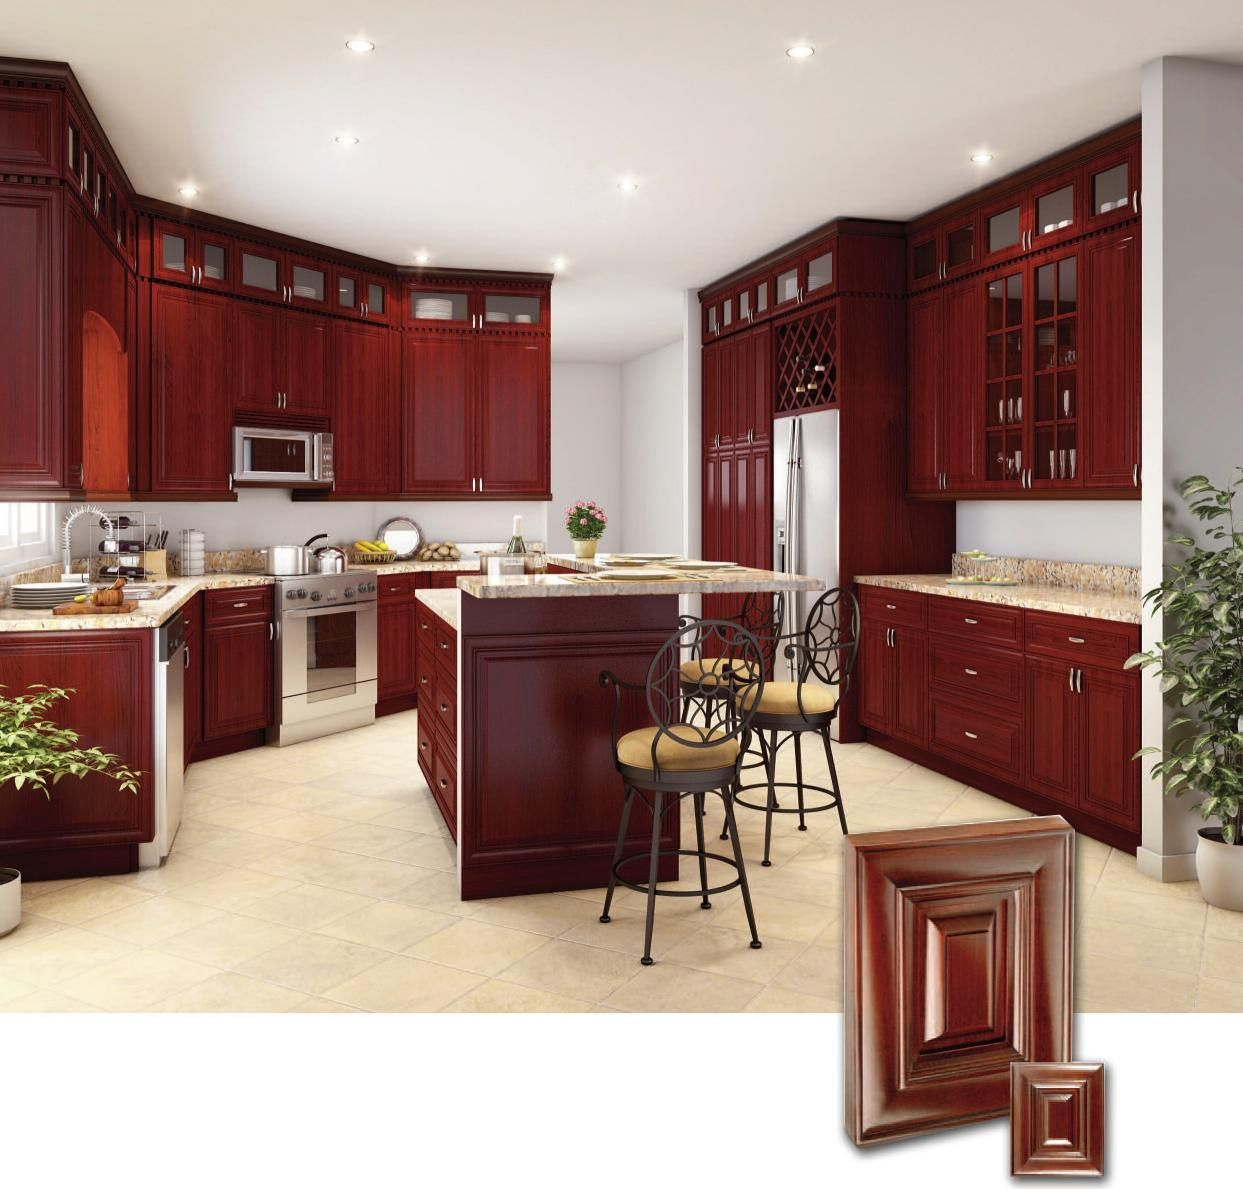 Cherry kitchen cabinets with gray wall and quartz for Cherry wood kitchen cabinets price